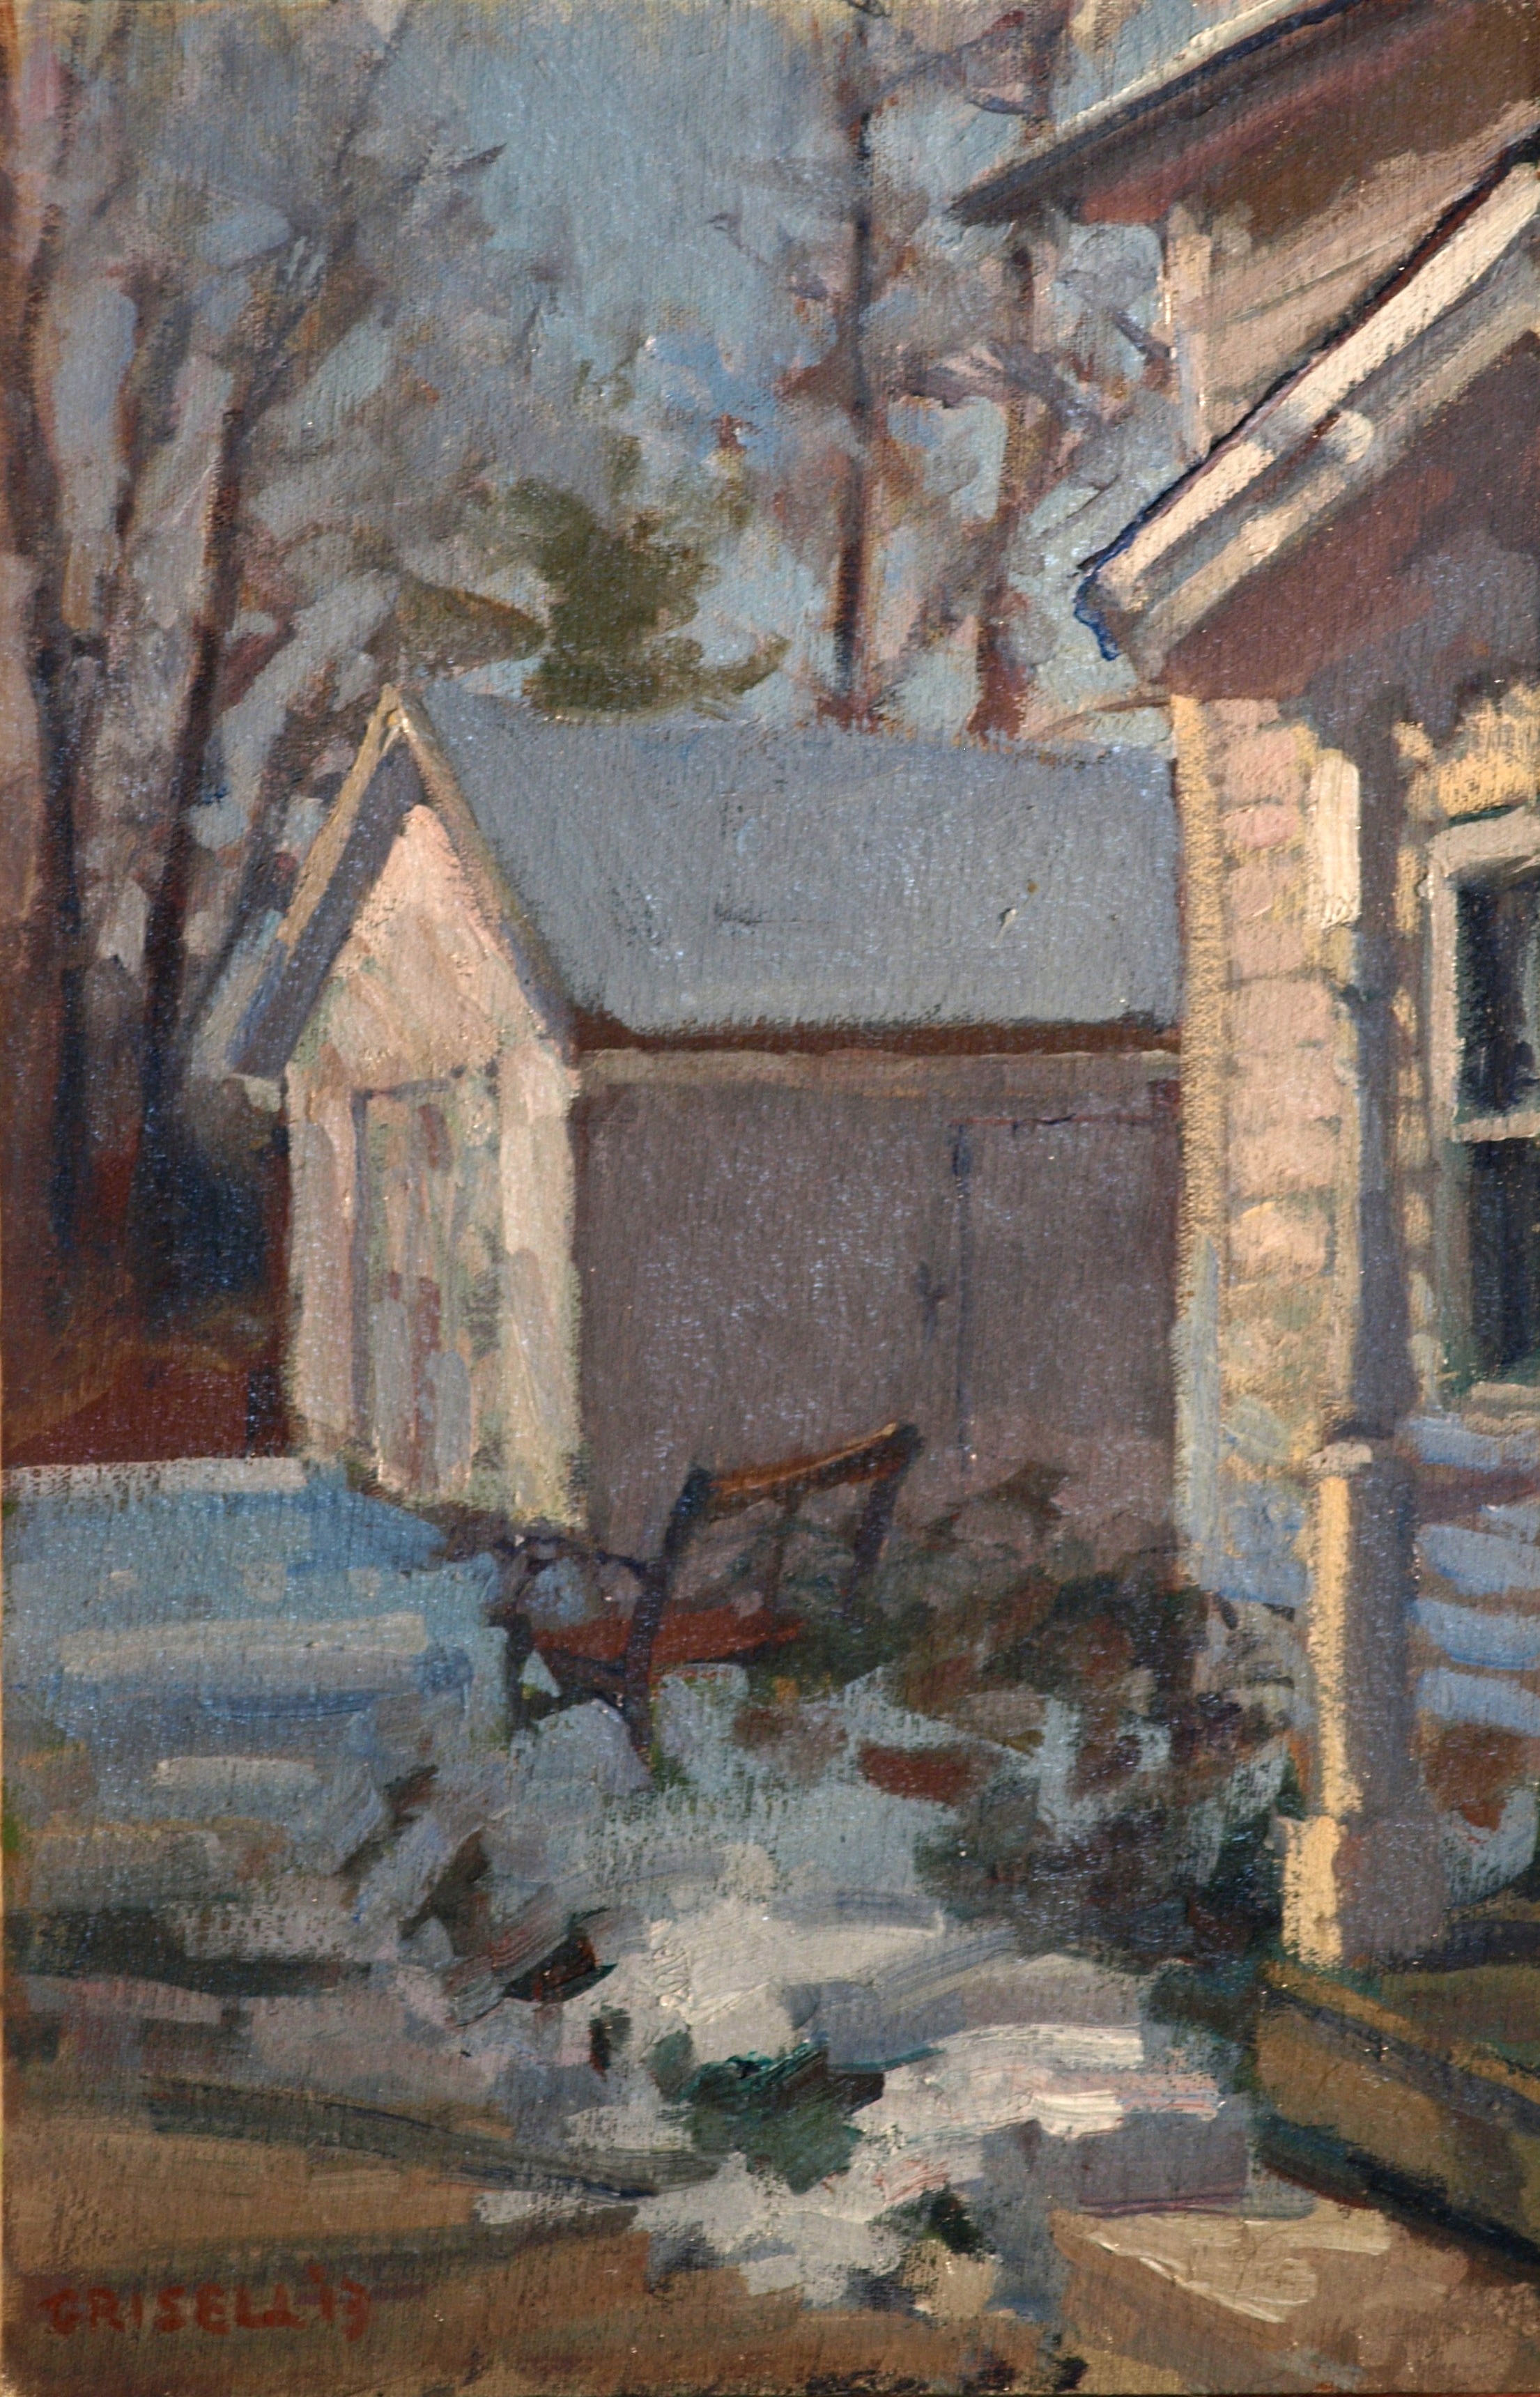 Winter Dooryard, Oil on Canvas on Panel, 18 x 12 Inches, by Susan Grisell, $275